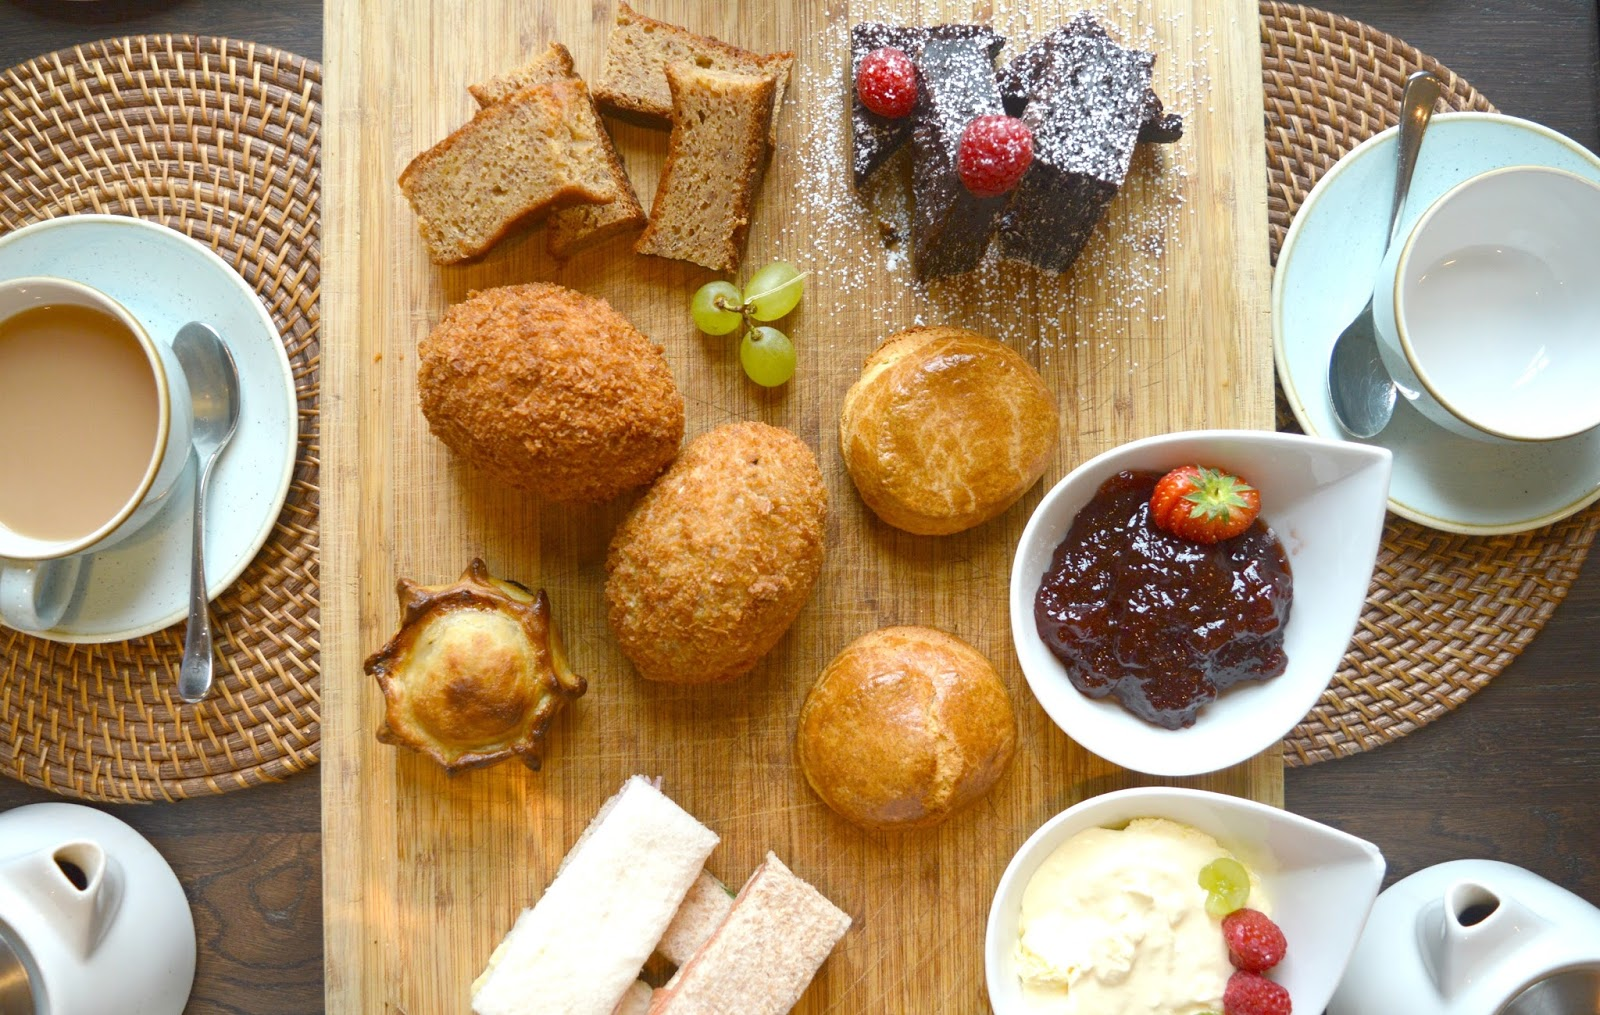 Afternoon Tea at The Painswick Hotel